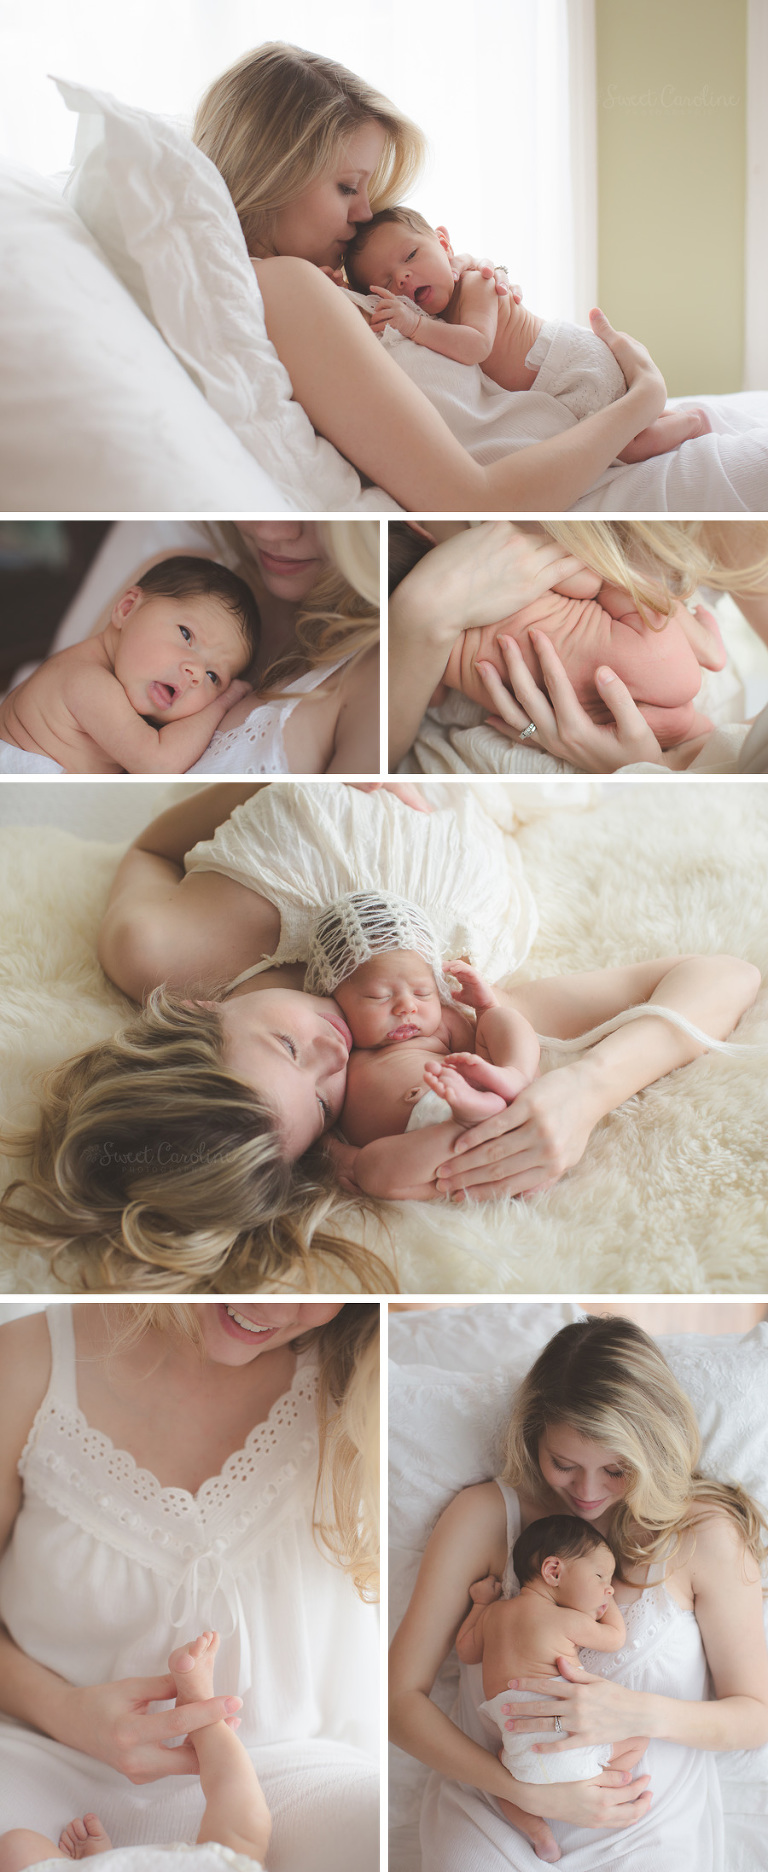 newborn girl with mama on natural neutral indoor bed